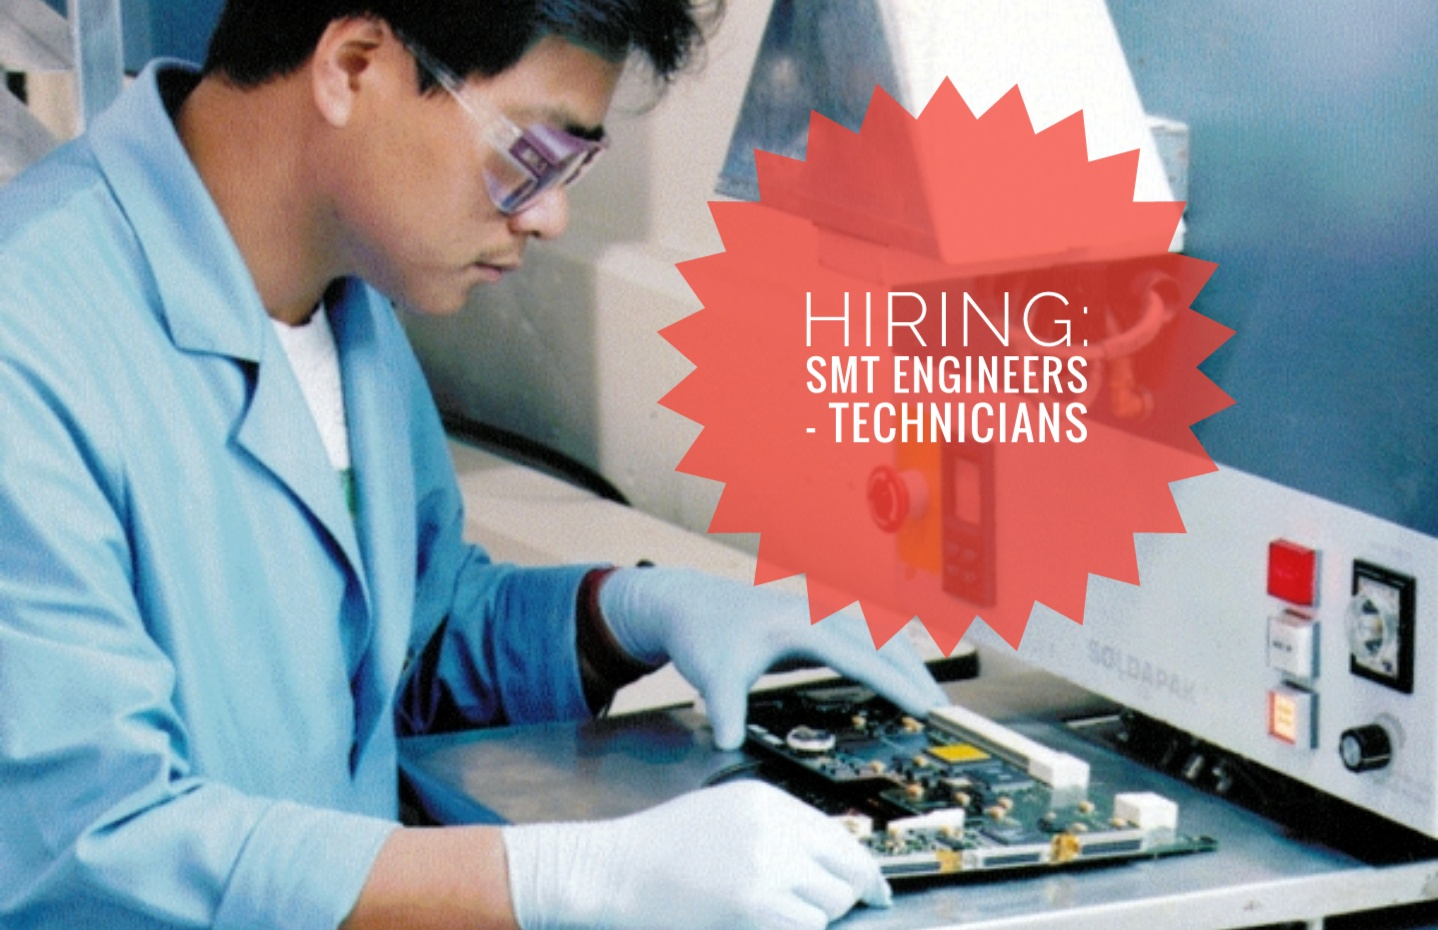 Taiwan Hiring Smt Engineers And Technicians For Compuware